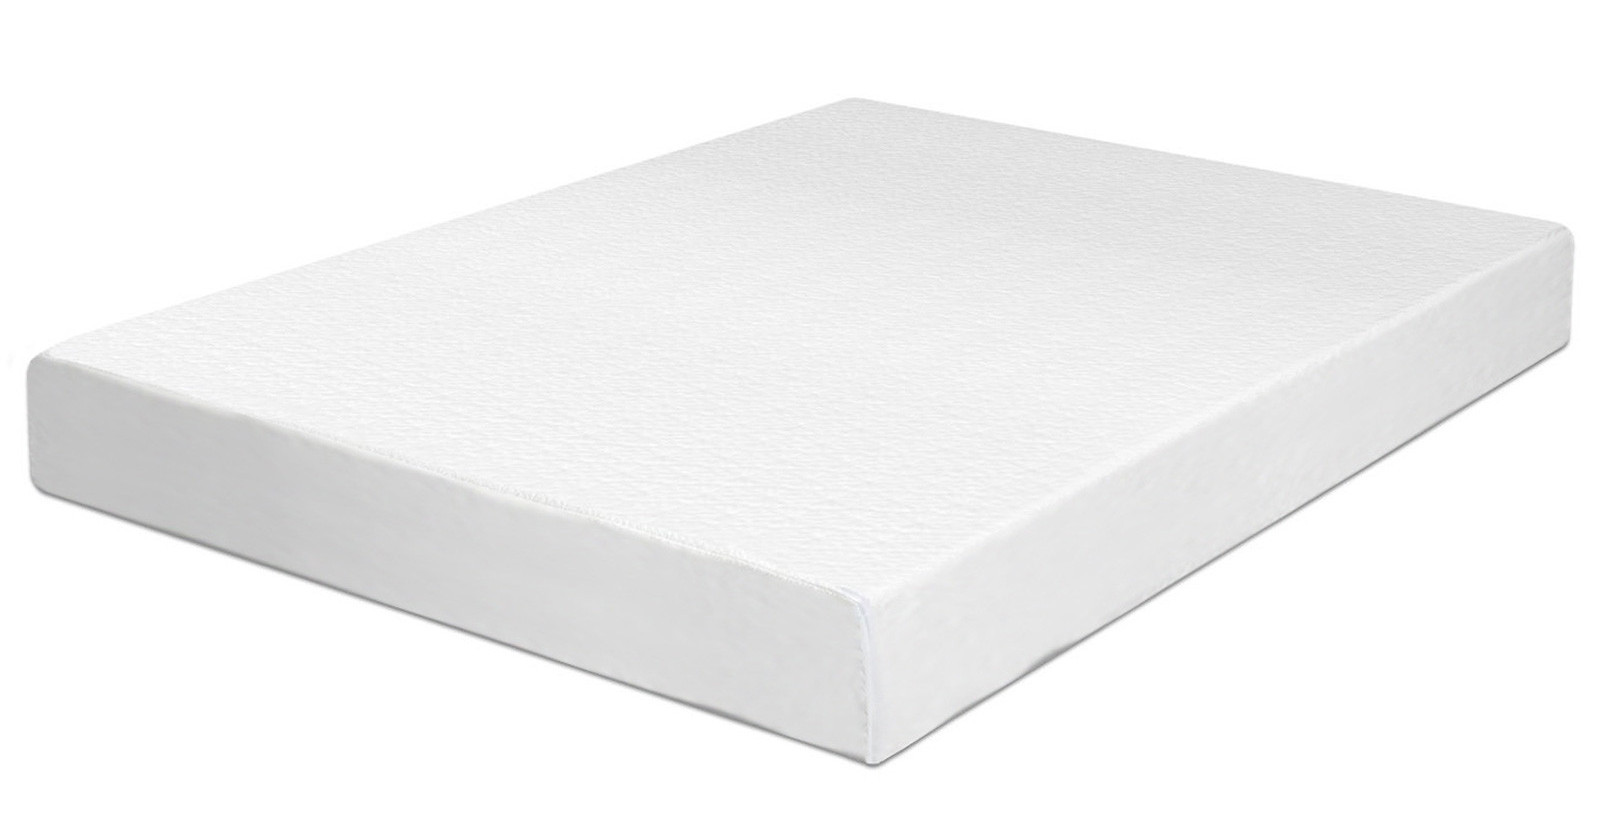 "High Density 6"" inch High Quality Memory Foam Queen Size Mattress by"